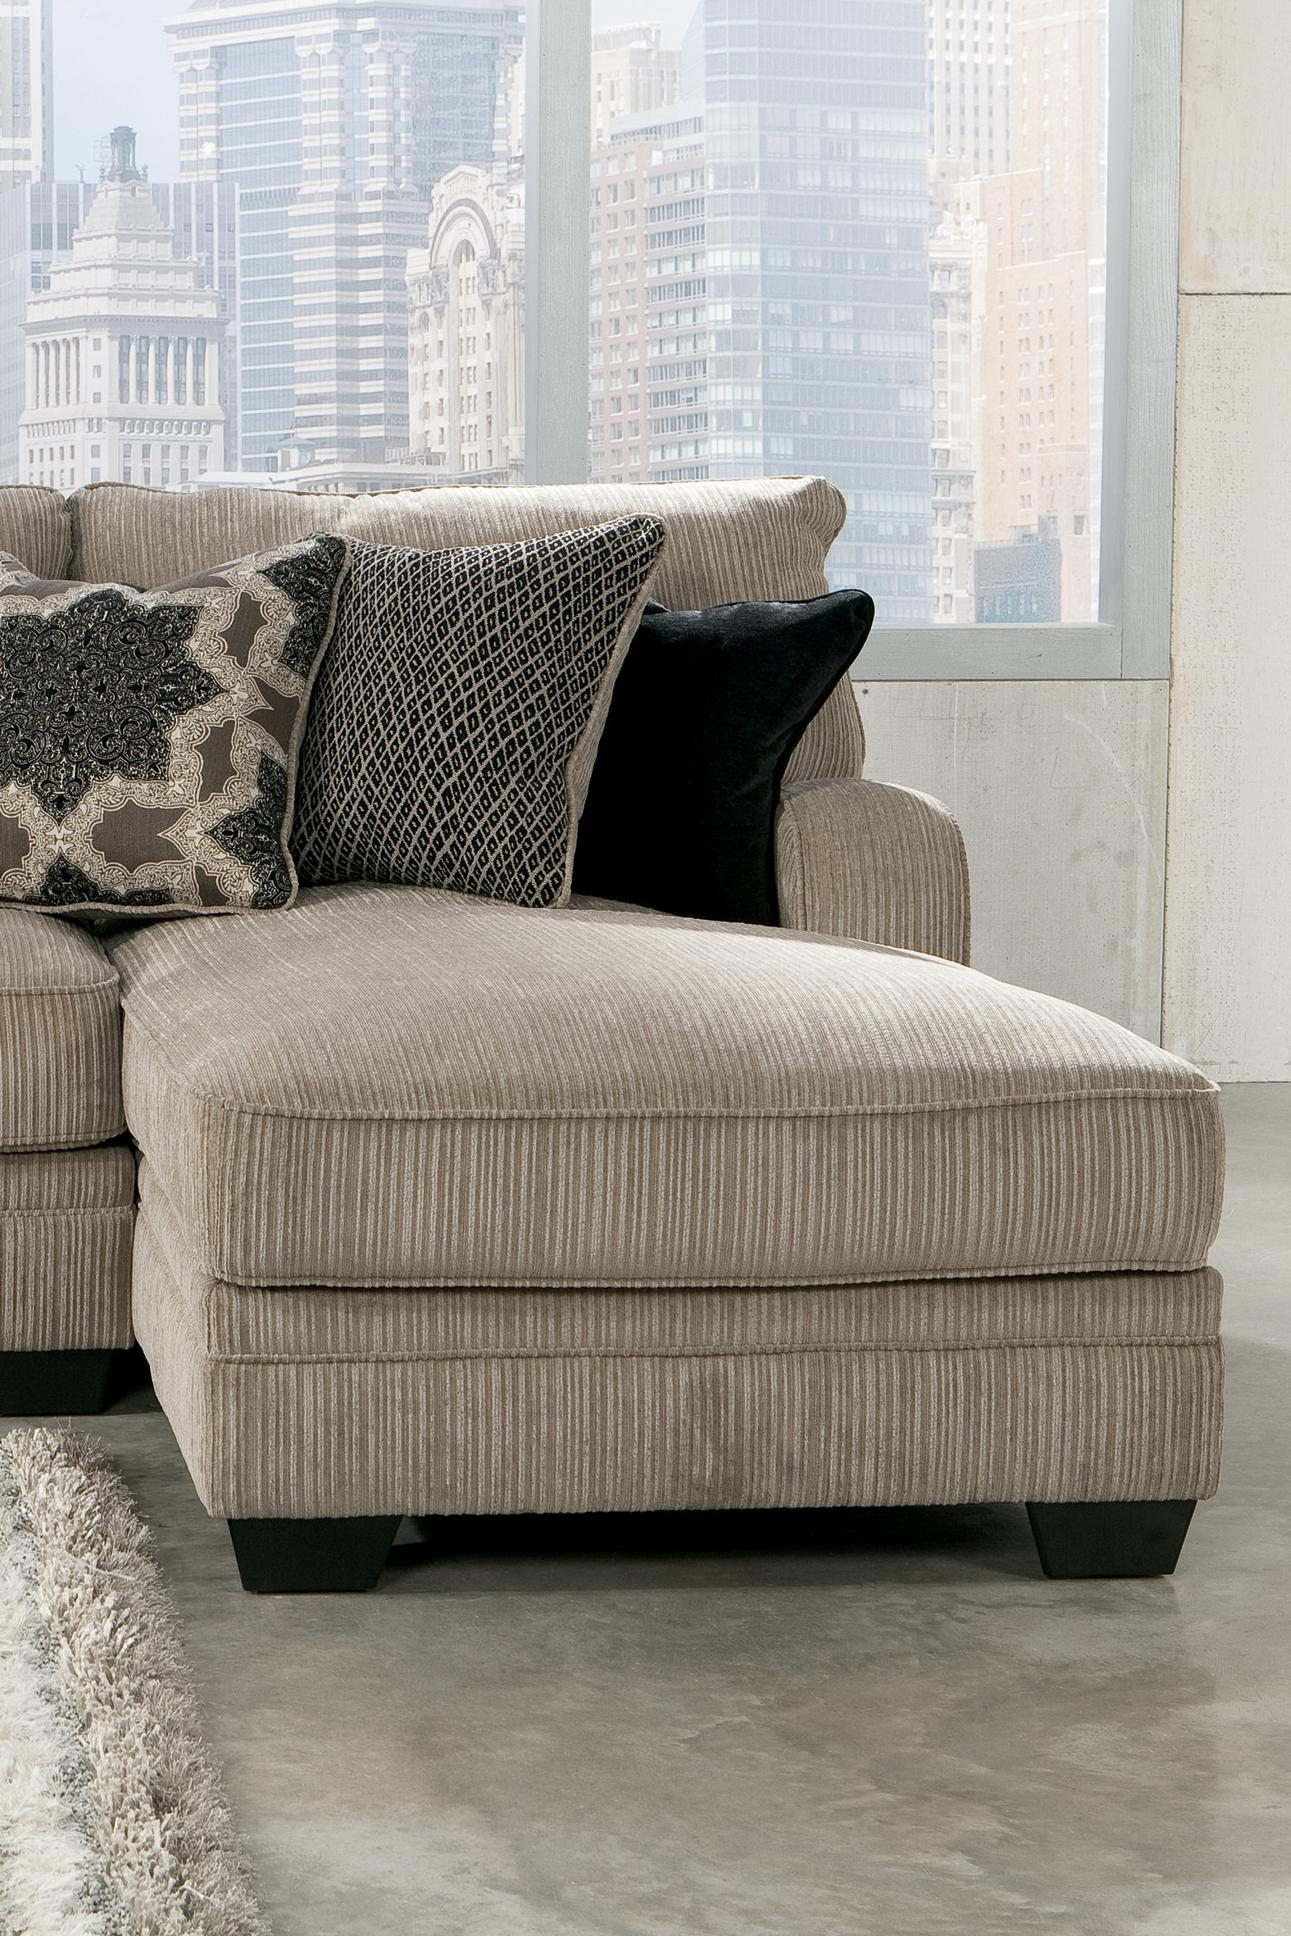 in c furniture sd sectional design katisha rooms mocha glendale living store room az phoenix signature leon darcy and by ashley